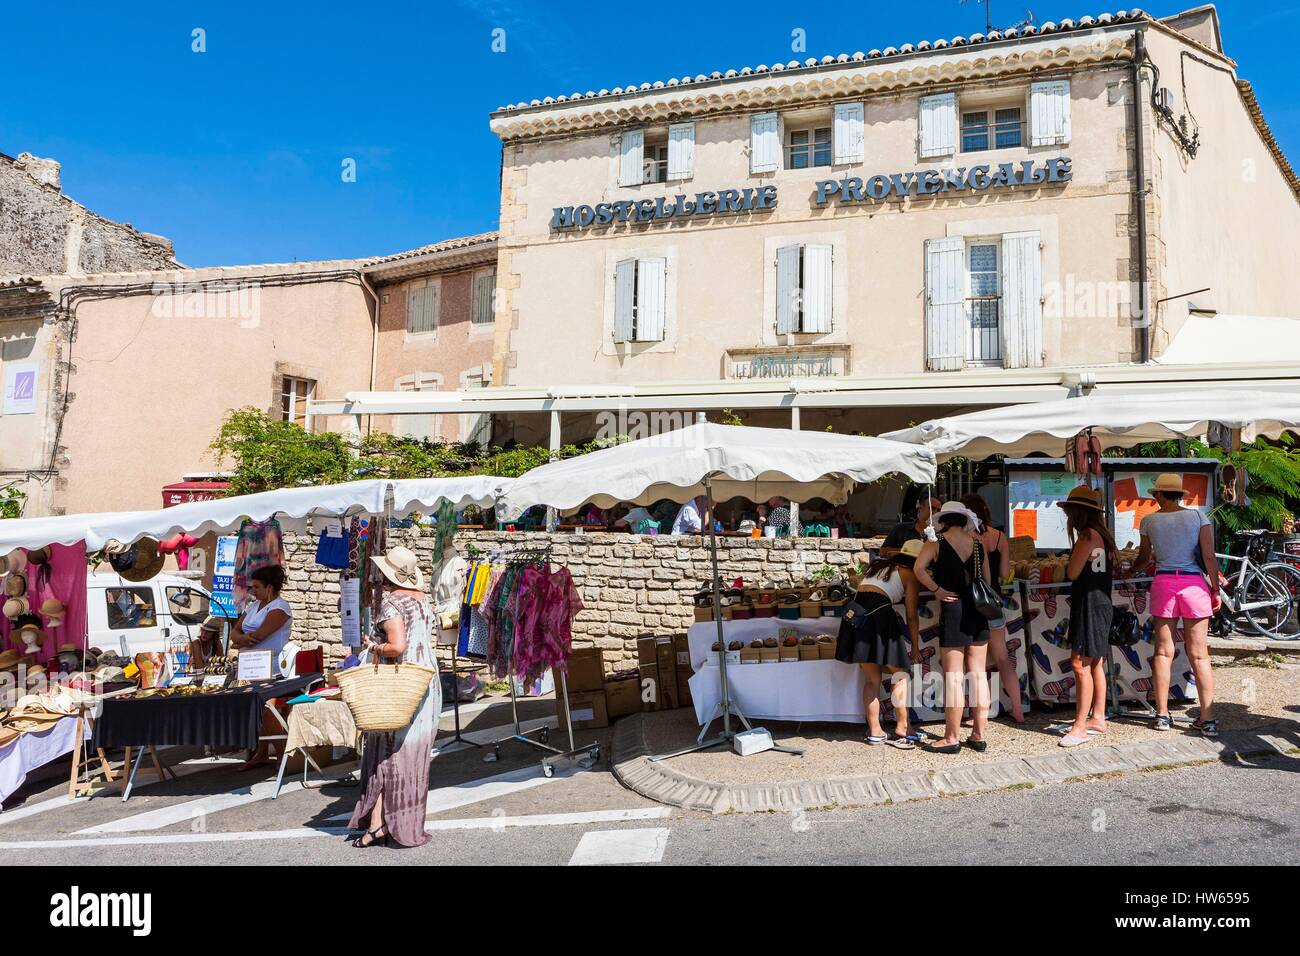 France, Vaucluse, Luberon, Gordes, certified the Most beautiful Villages of France, the market - Stock Image